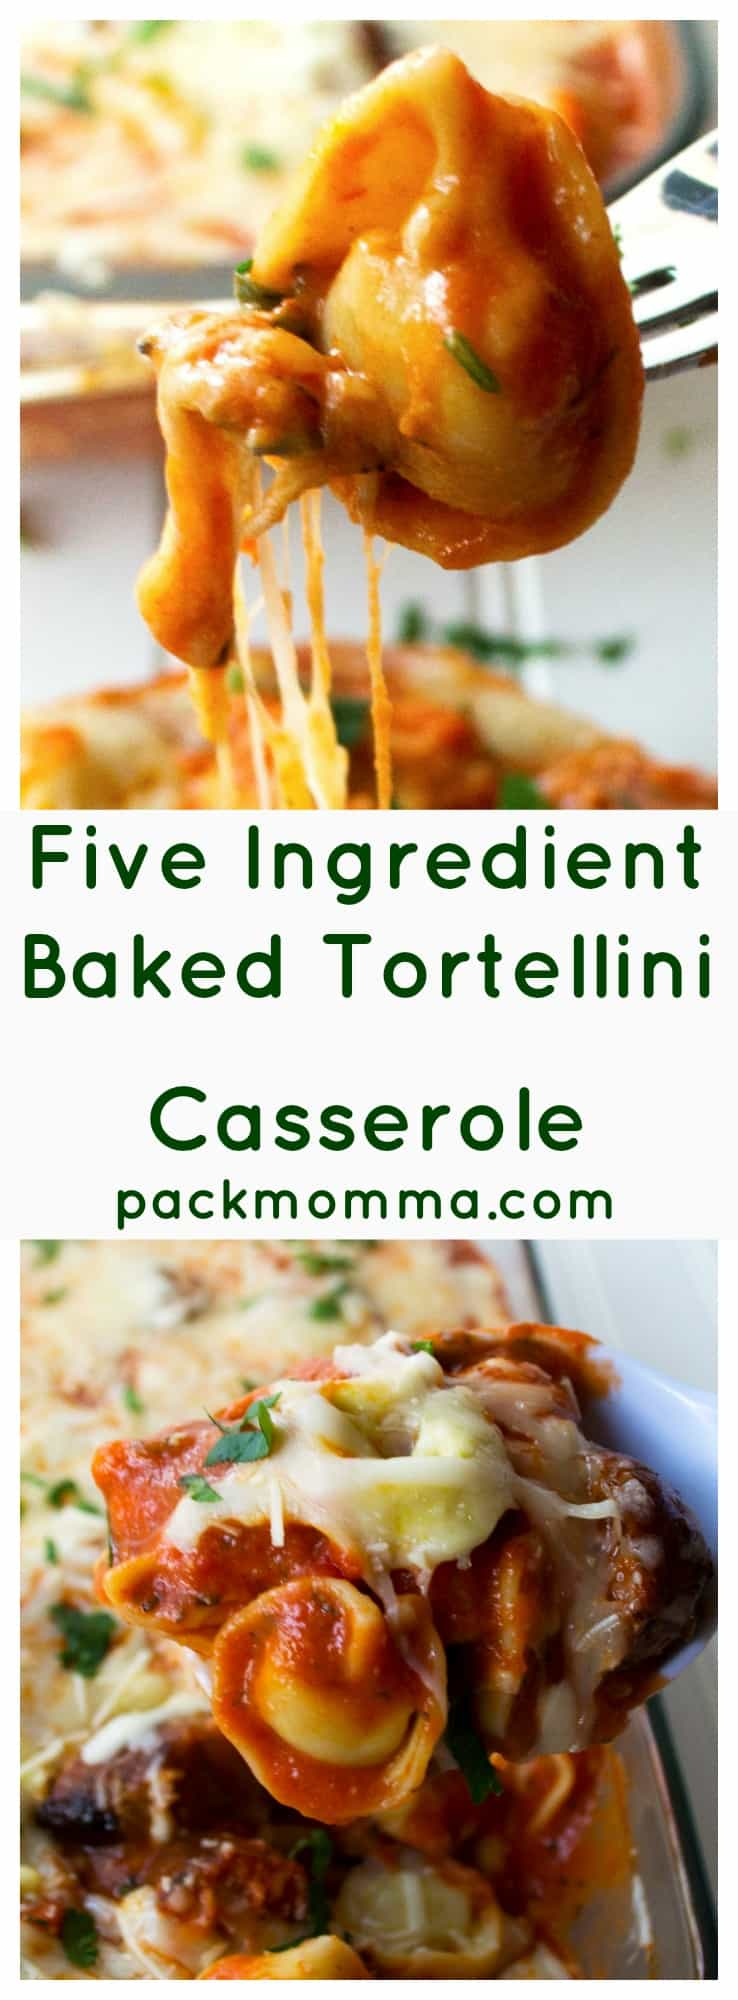 Five Ingredient Baked Tortellini Casserole | This Five Ingredient Baked Tortellini Casserole is the ultimate comfort food. A hot, hearty, delicious meal with only five ingredients and in 30 minutes! | Pack Momma | https://www.packmomma.com